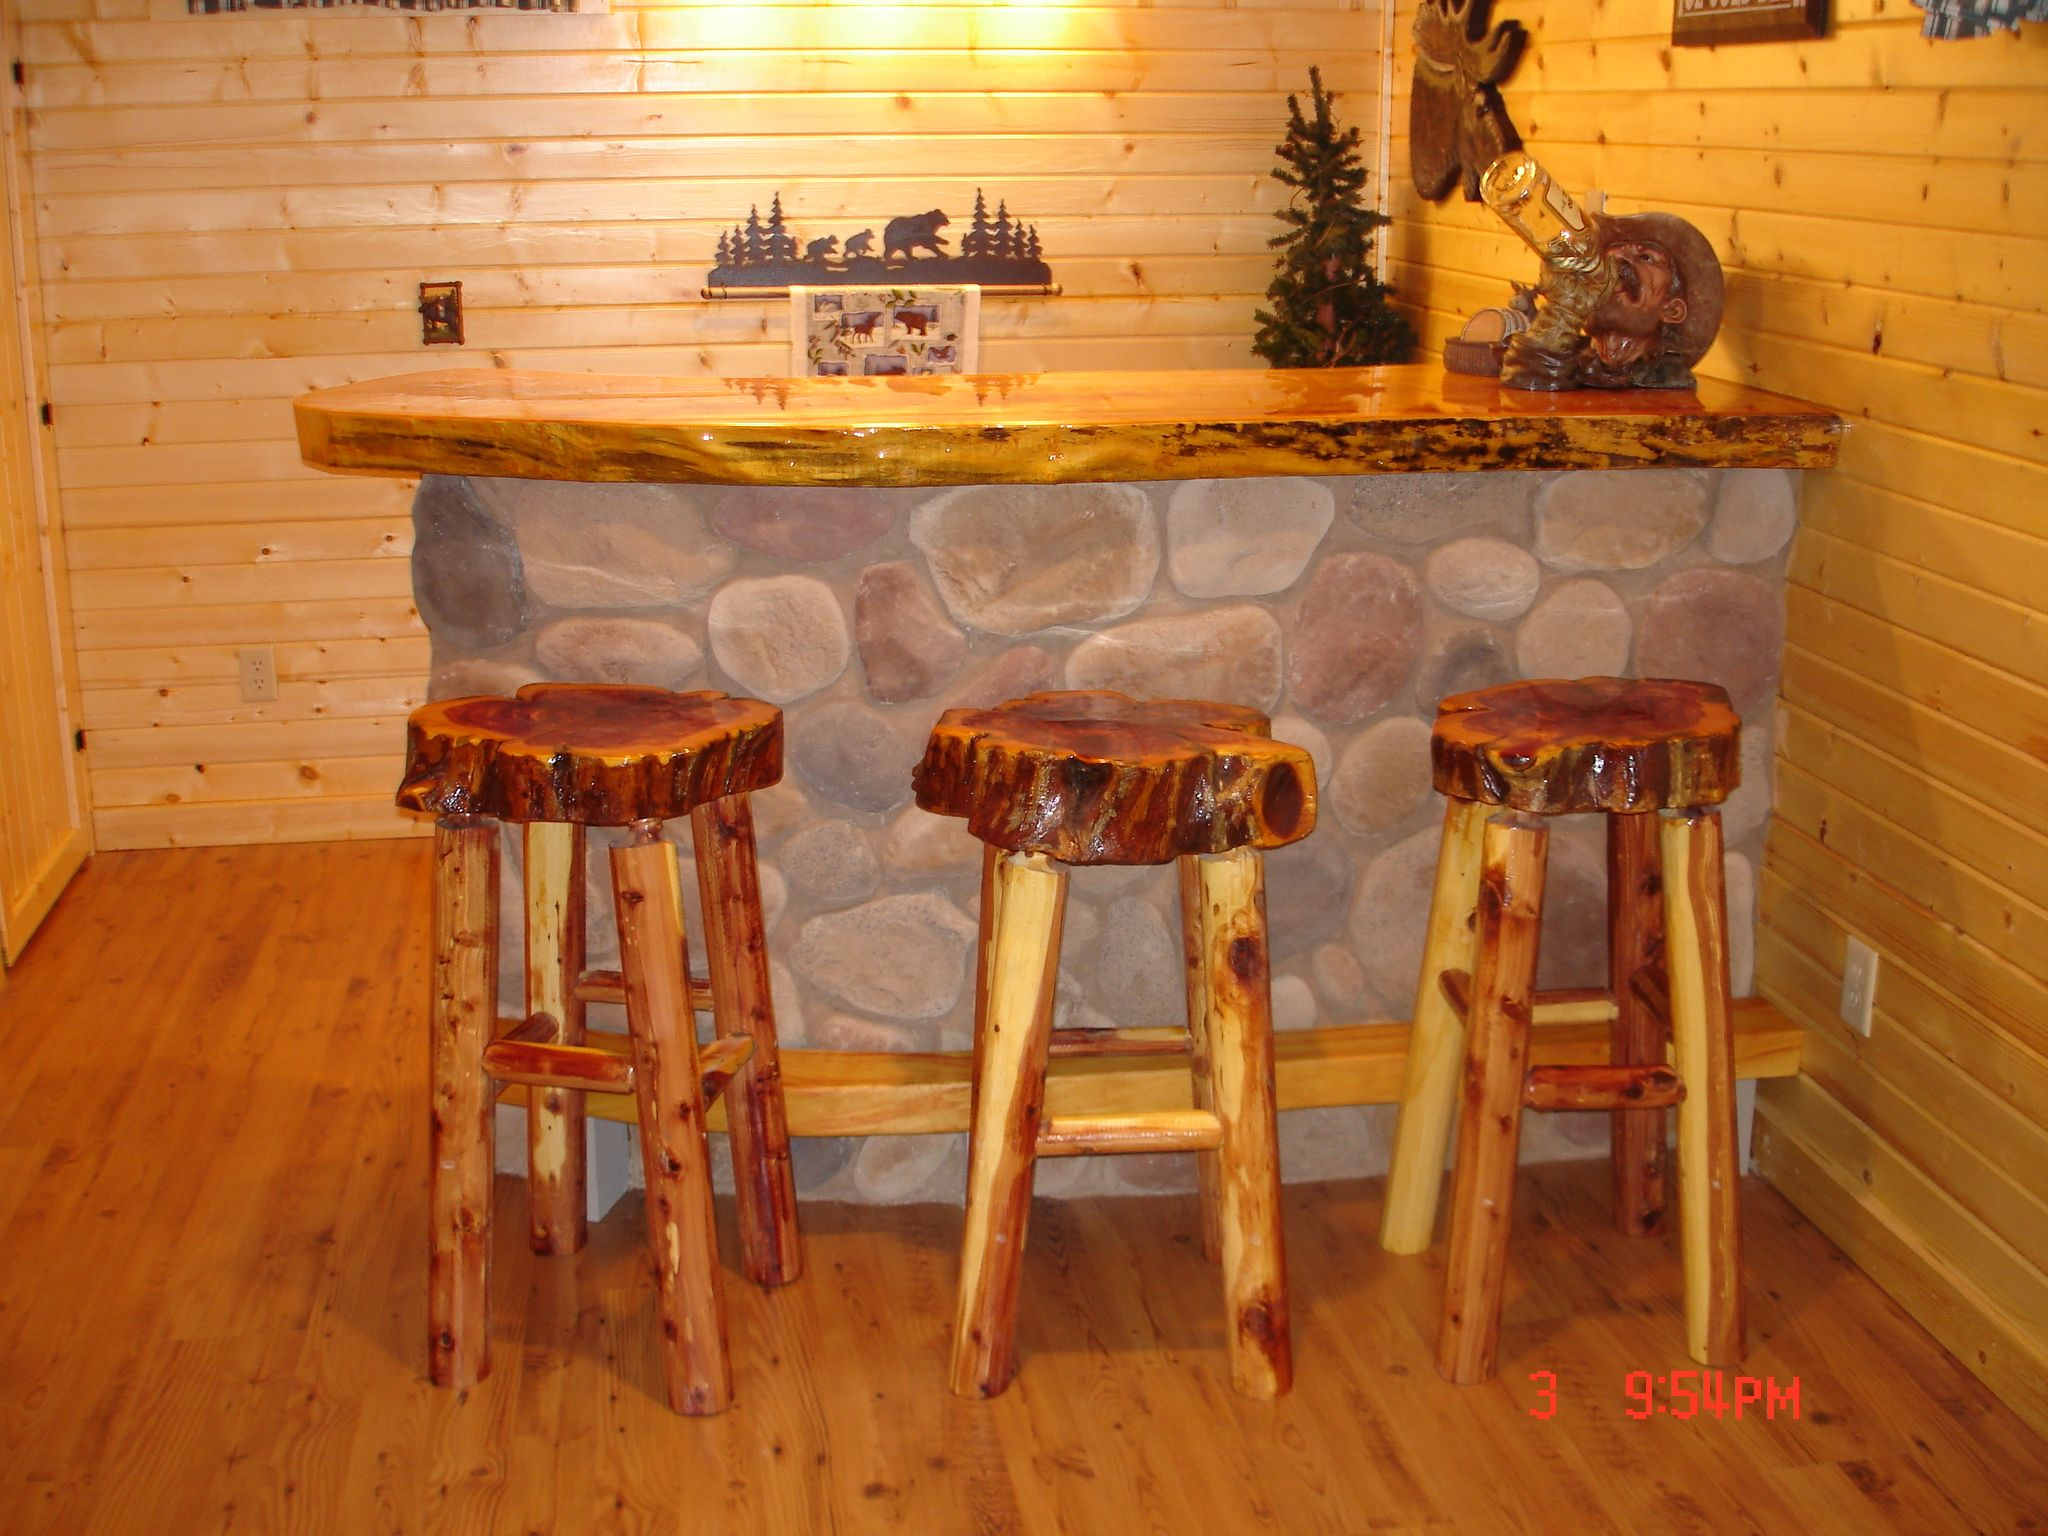 Cool wooden bar projects to try pinterest